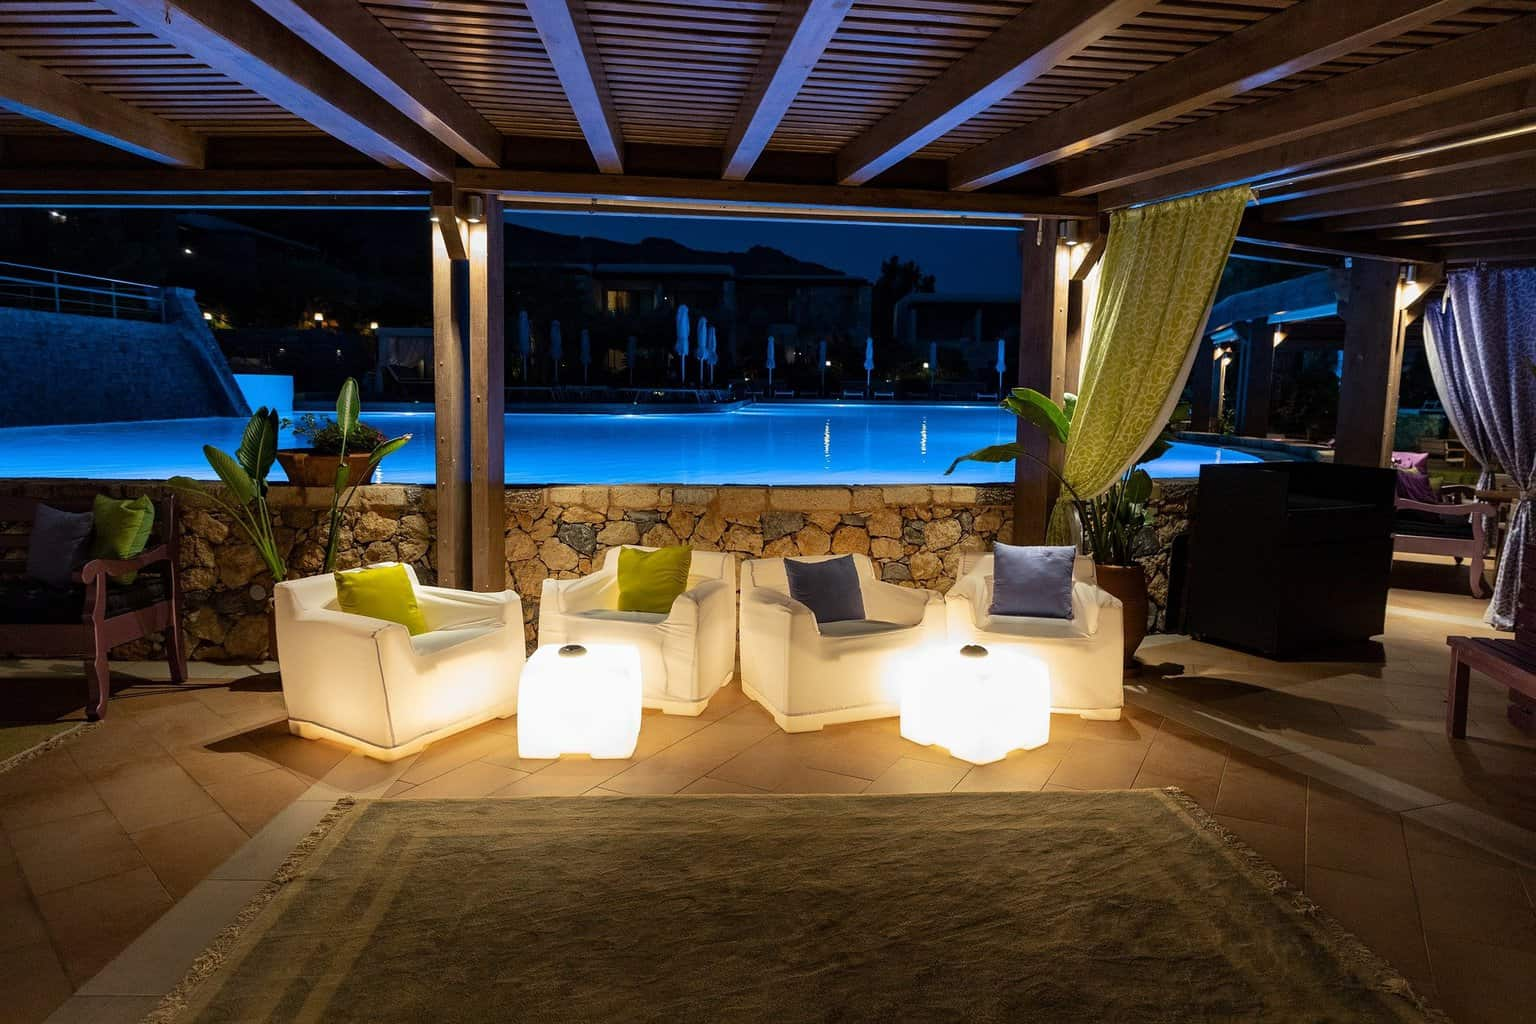 Outdoor pool with LED light fixtures